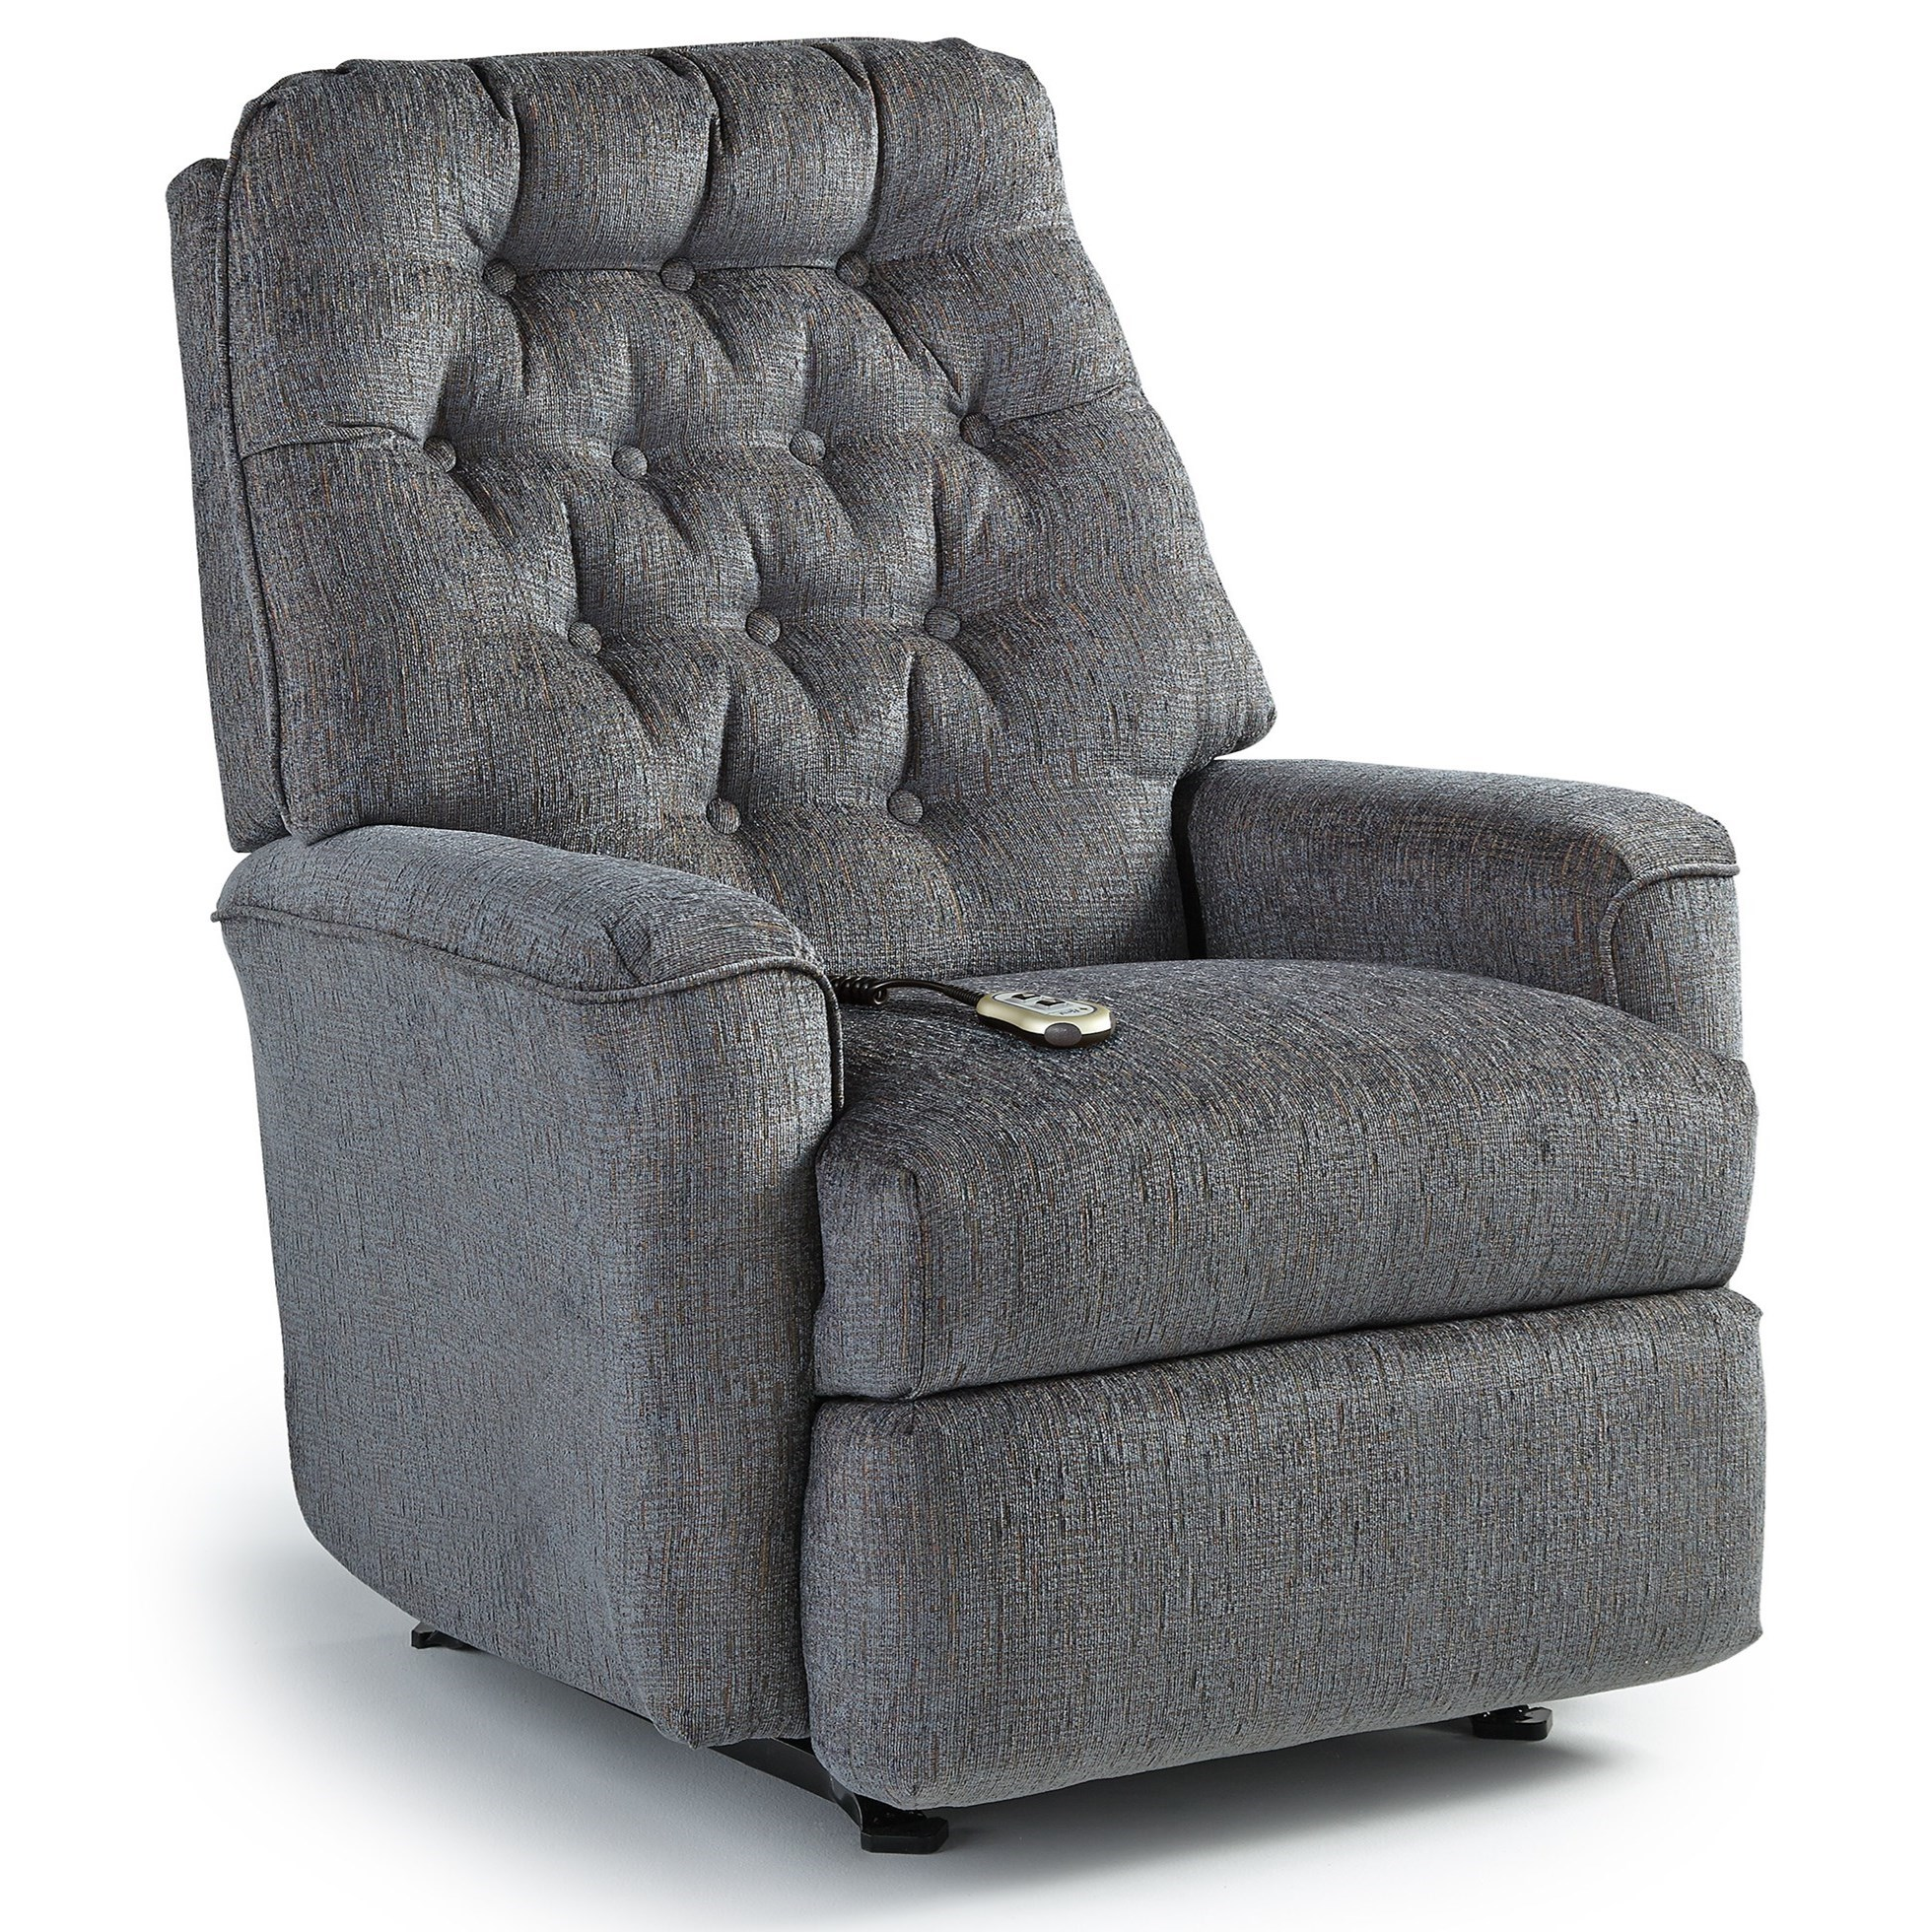 Best Home Furnishings Recliners - Medium Mexi Power Lift Recliner - Item Number: 7NW51